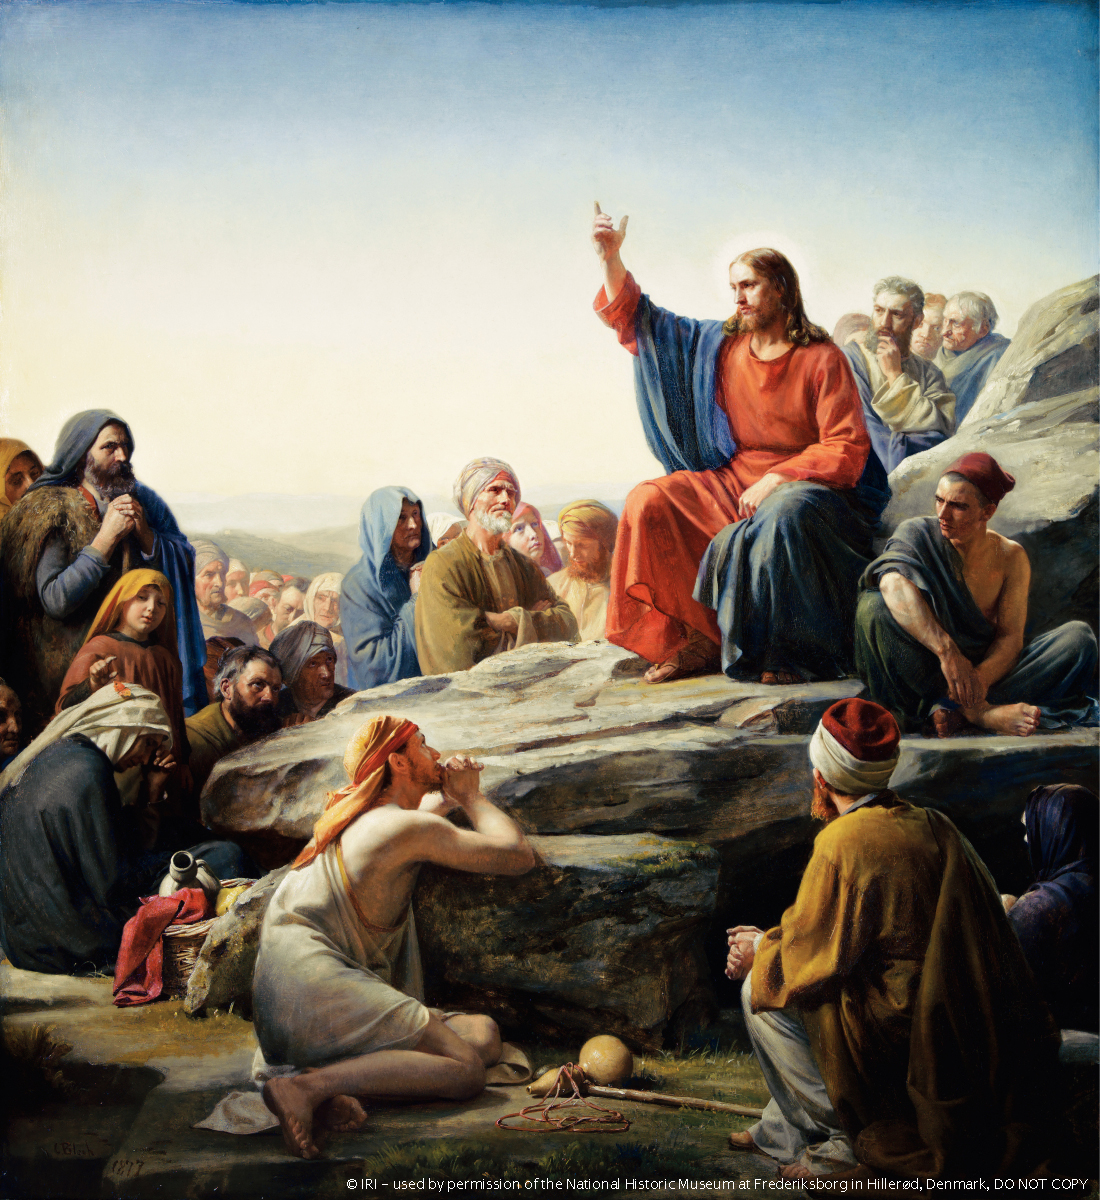 Christ in red and blue robes, sitting on a large rock and teaching, while a large group of people sit around Him listening to His words.